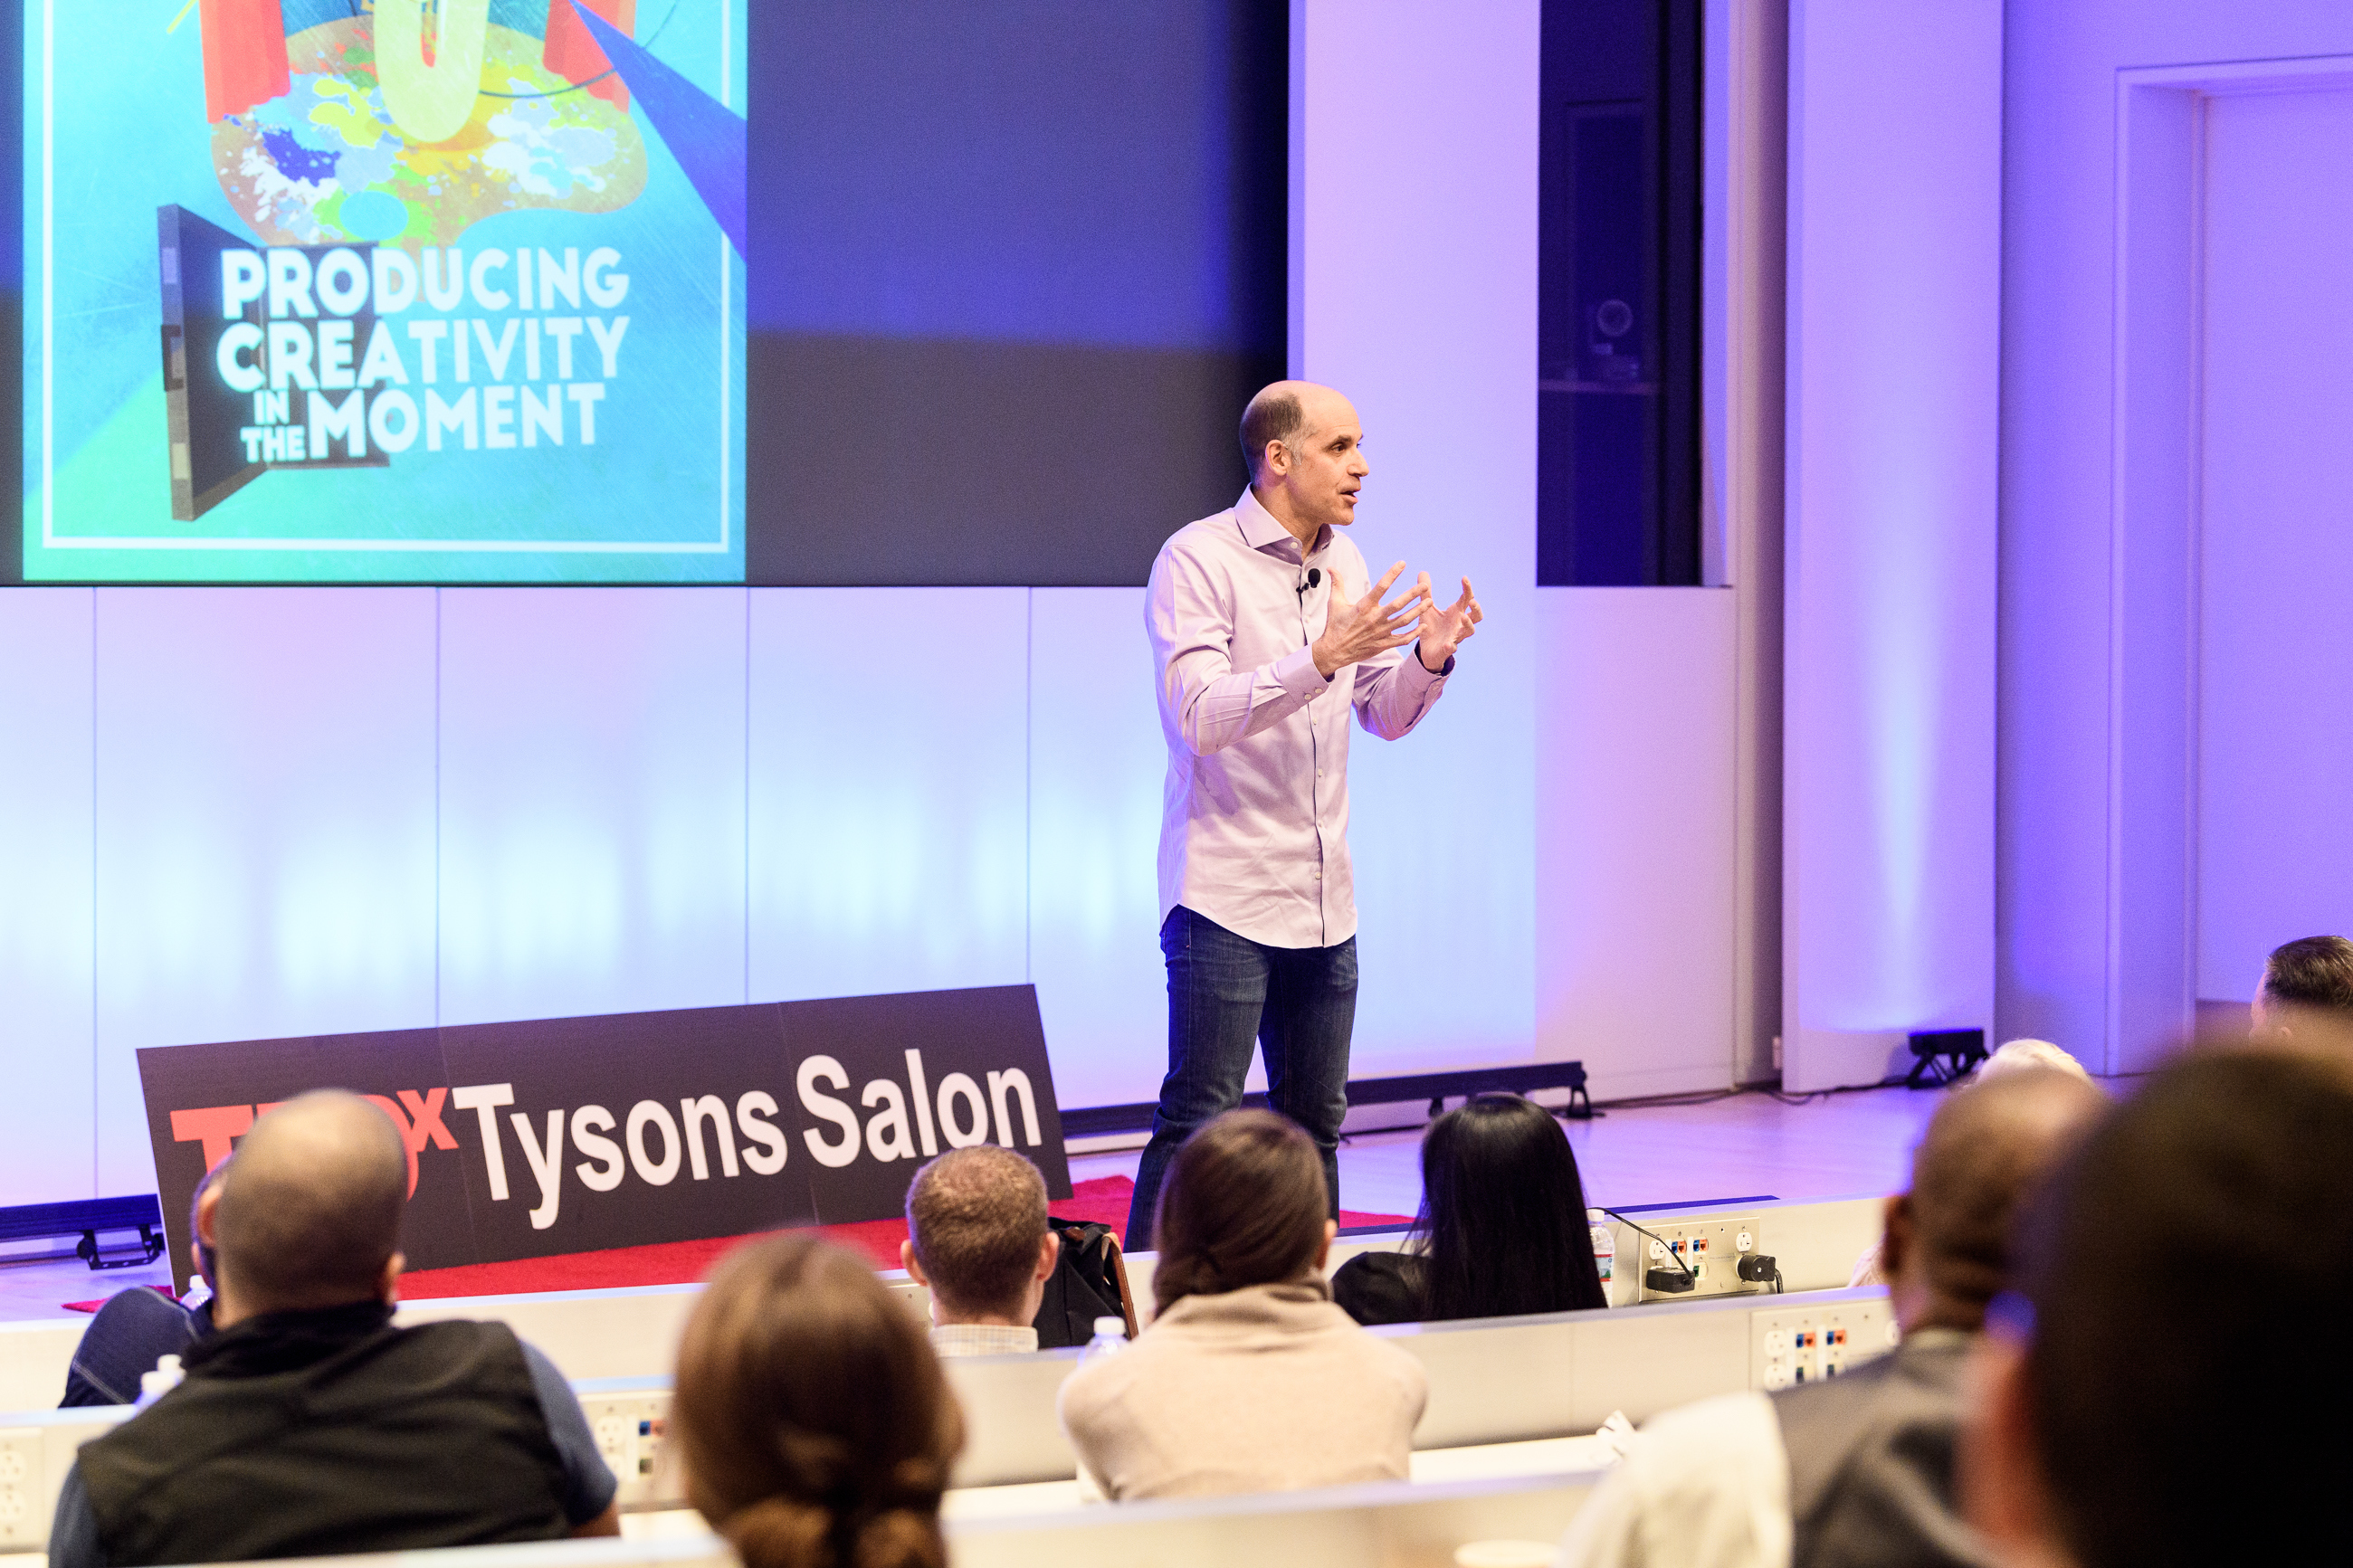 TEDx Tysons Salon